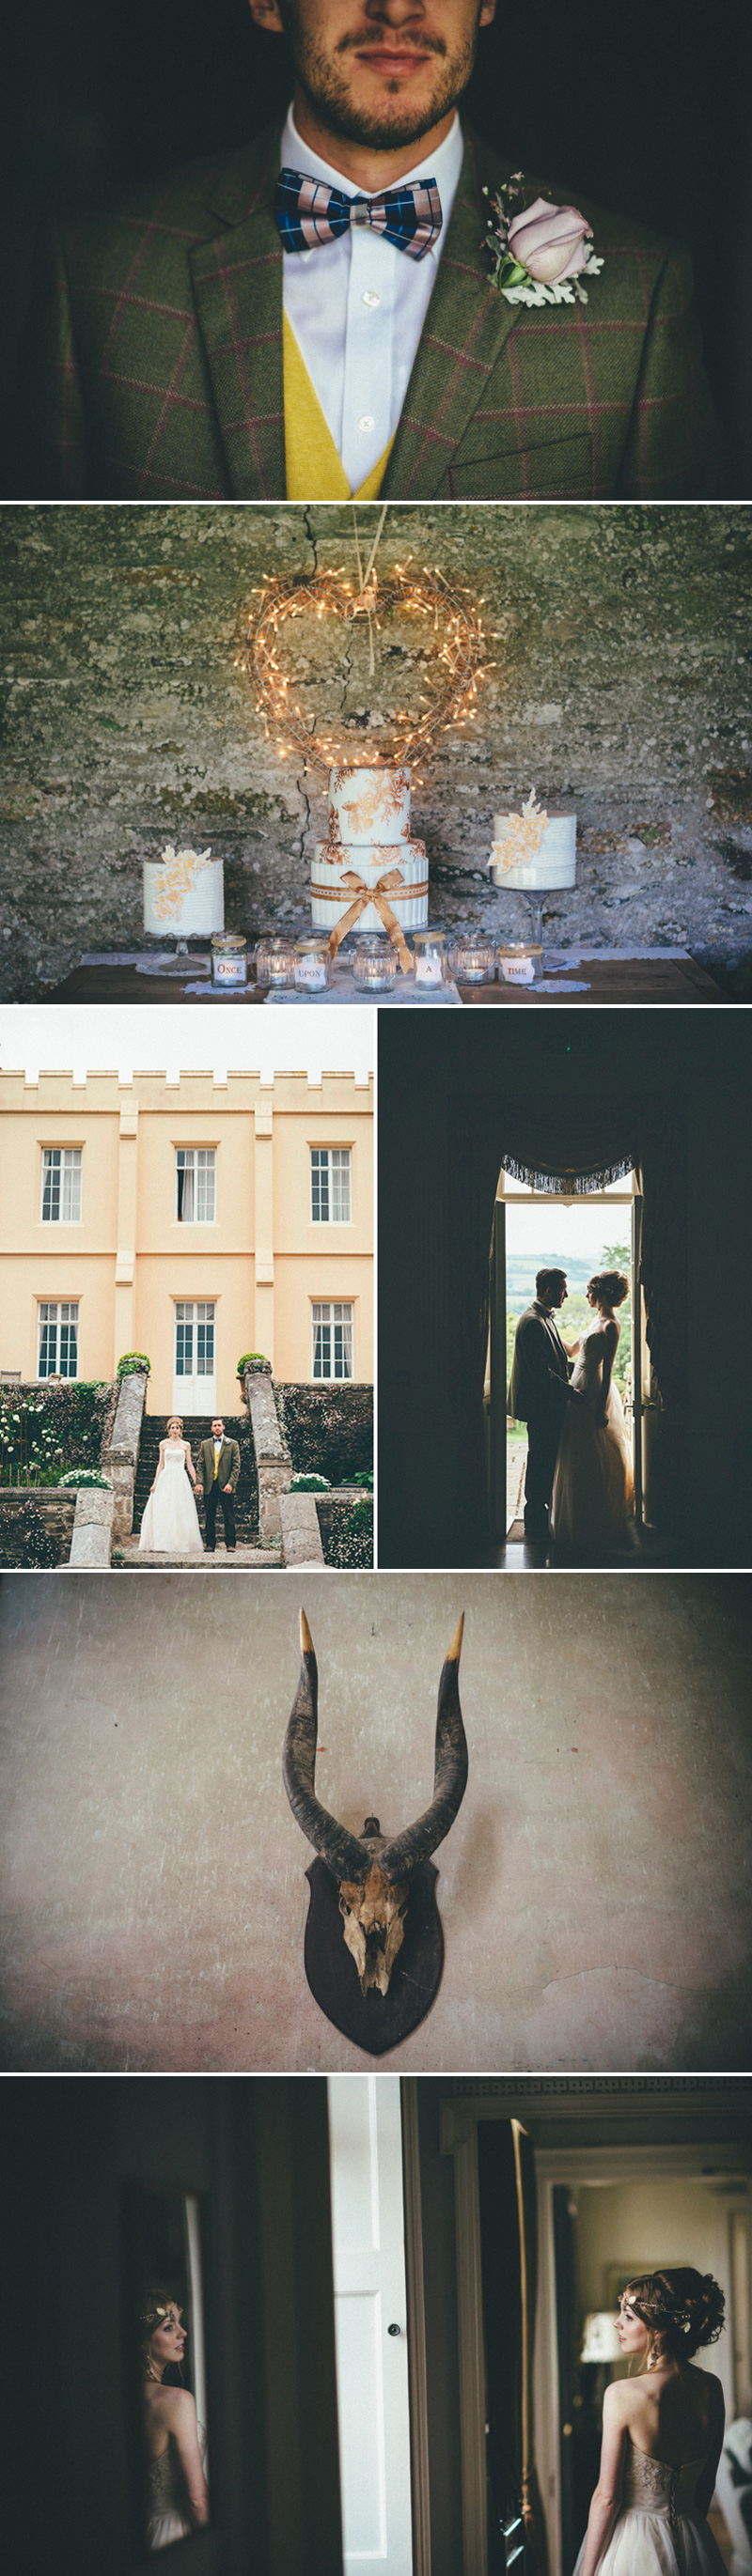 rustic-elegance-bridal-styled-shoot-at-pentillie-castle-styled-by-blue-fizz-ben-selway-photography-coco-wedding-venues-layer2